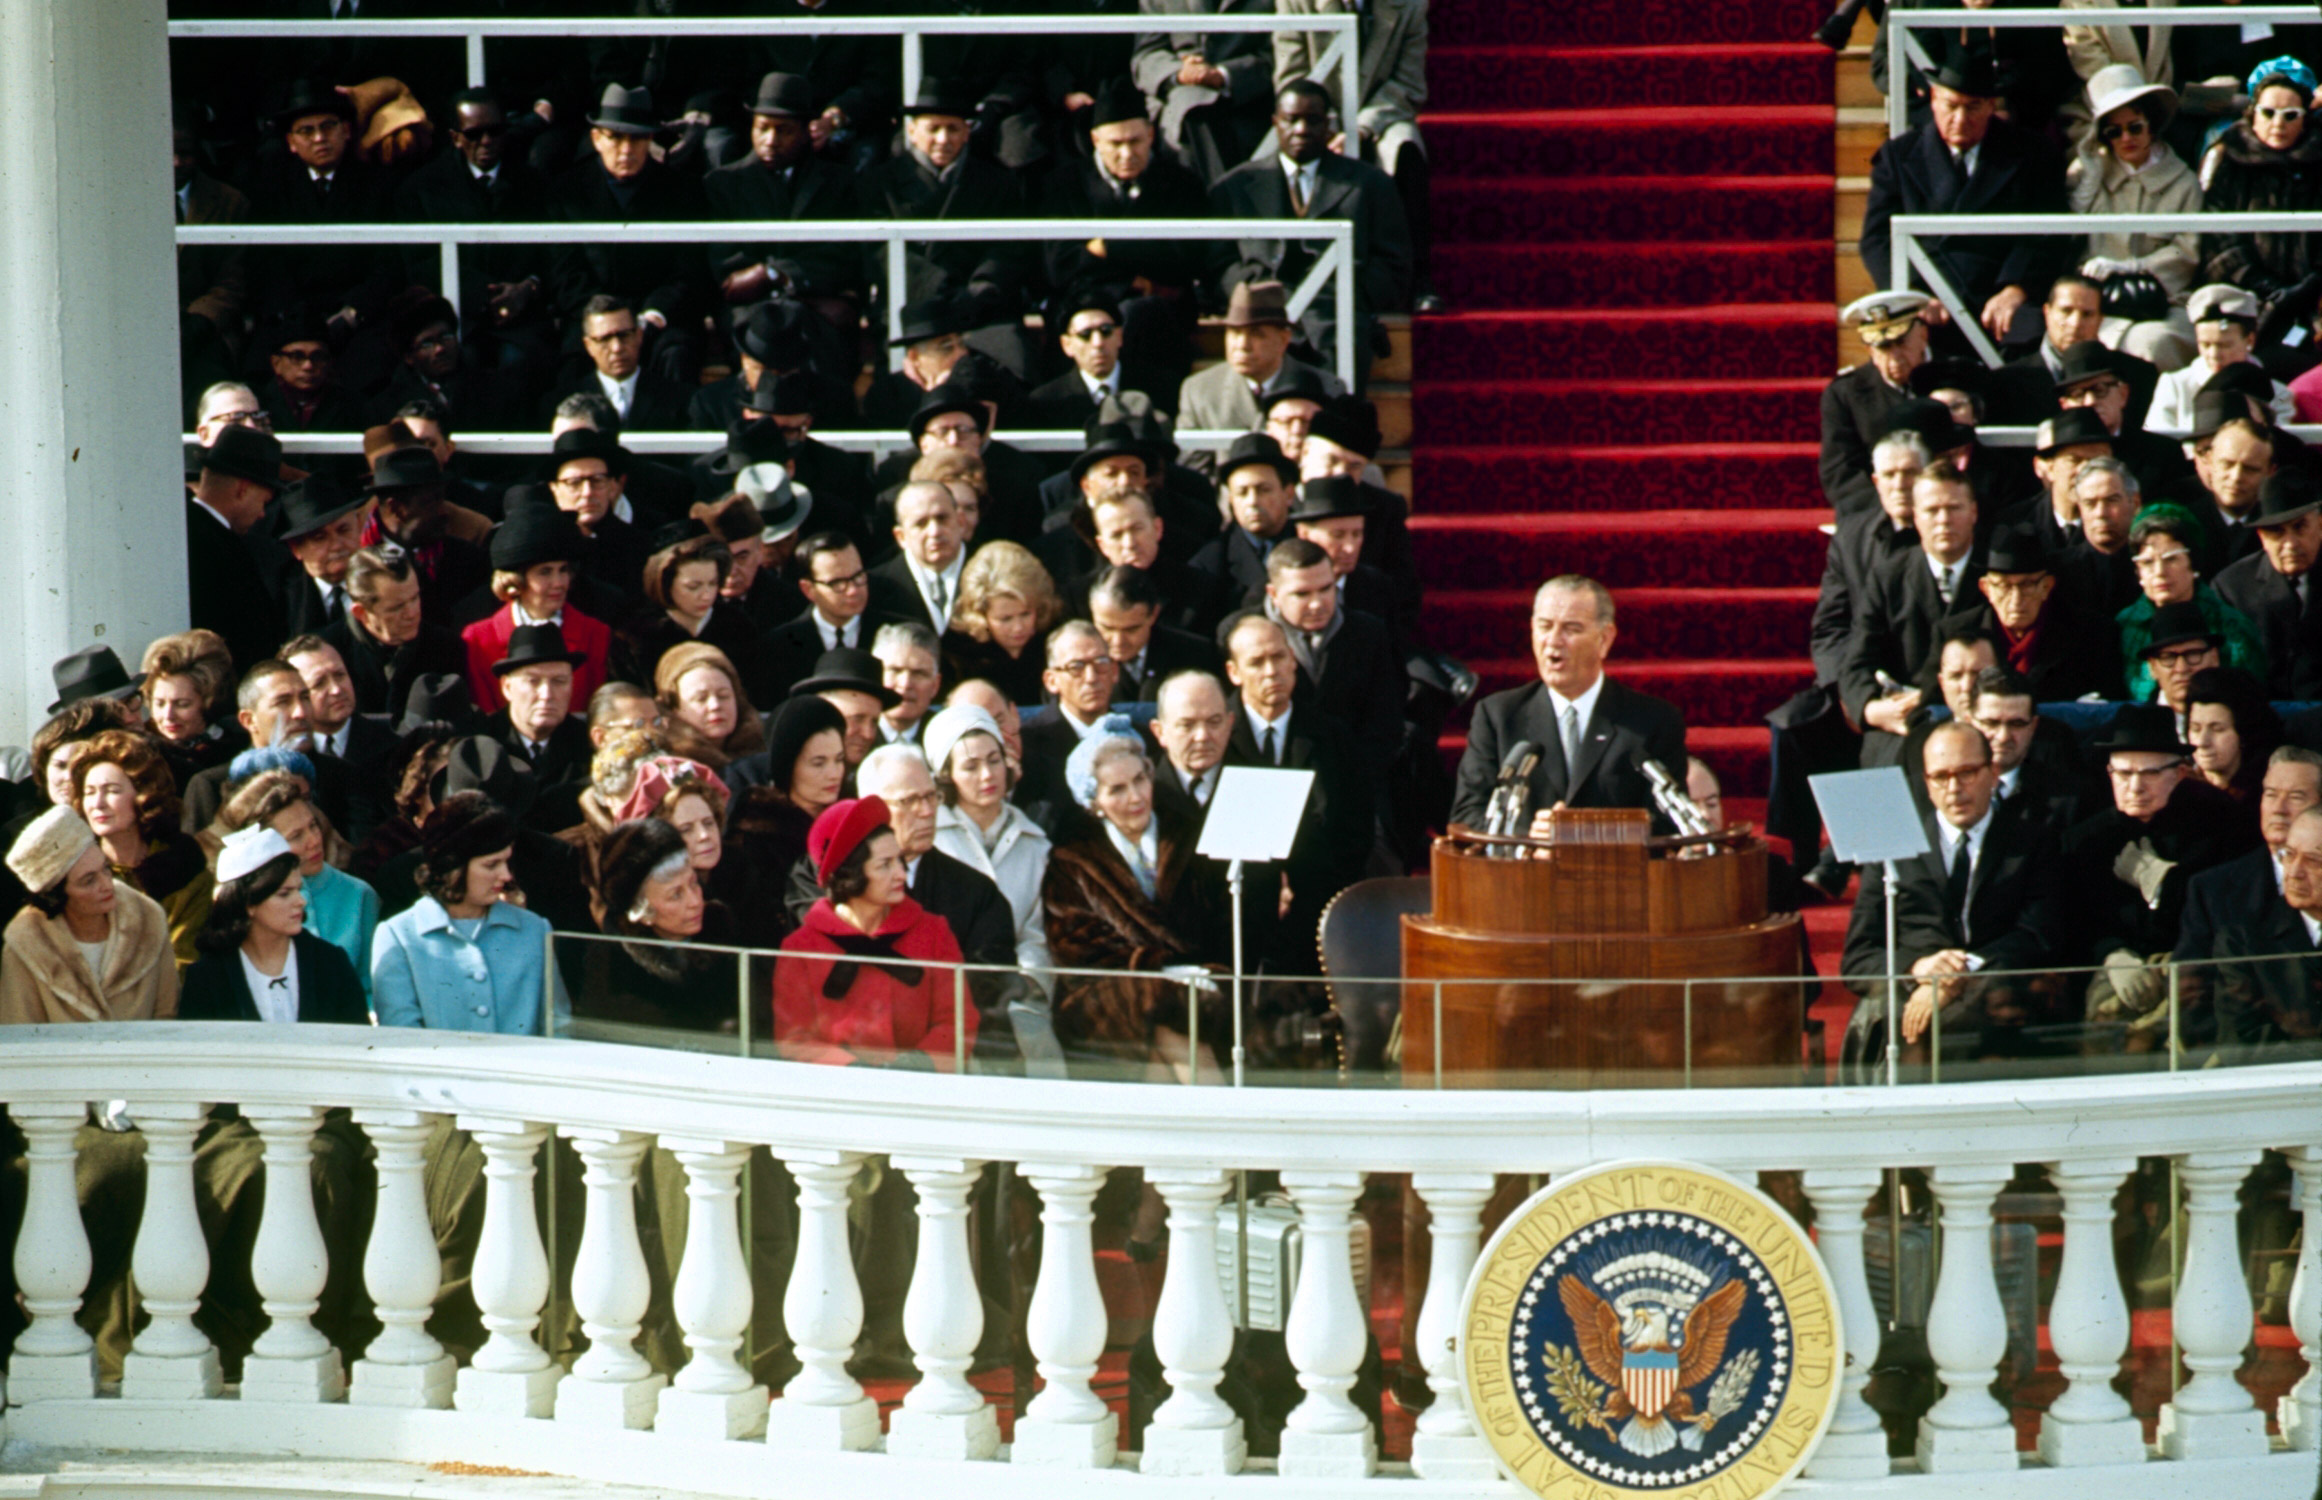 Lyndon Johnson giving the inaugural address at his  inauguration. First Lady, Lady Bird Johnson is seated to his right, 1965.